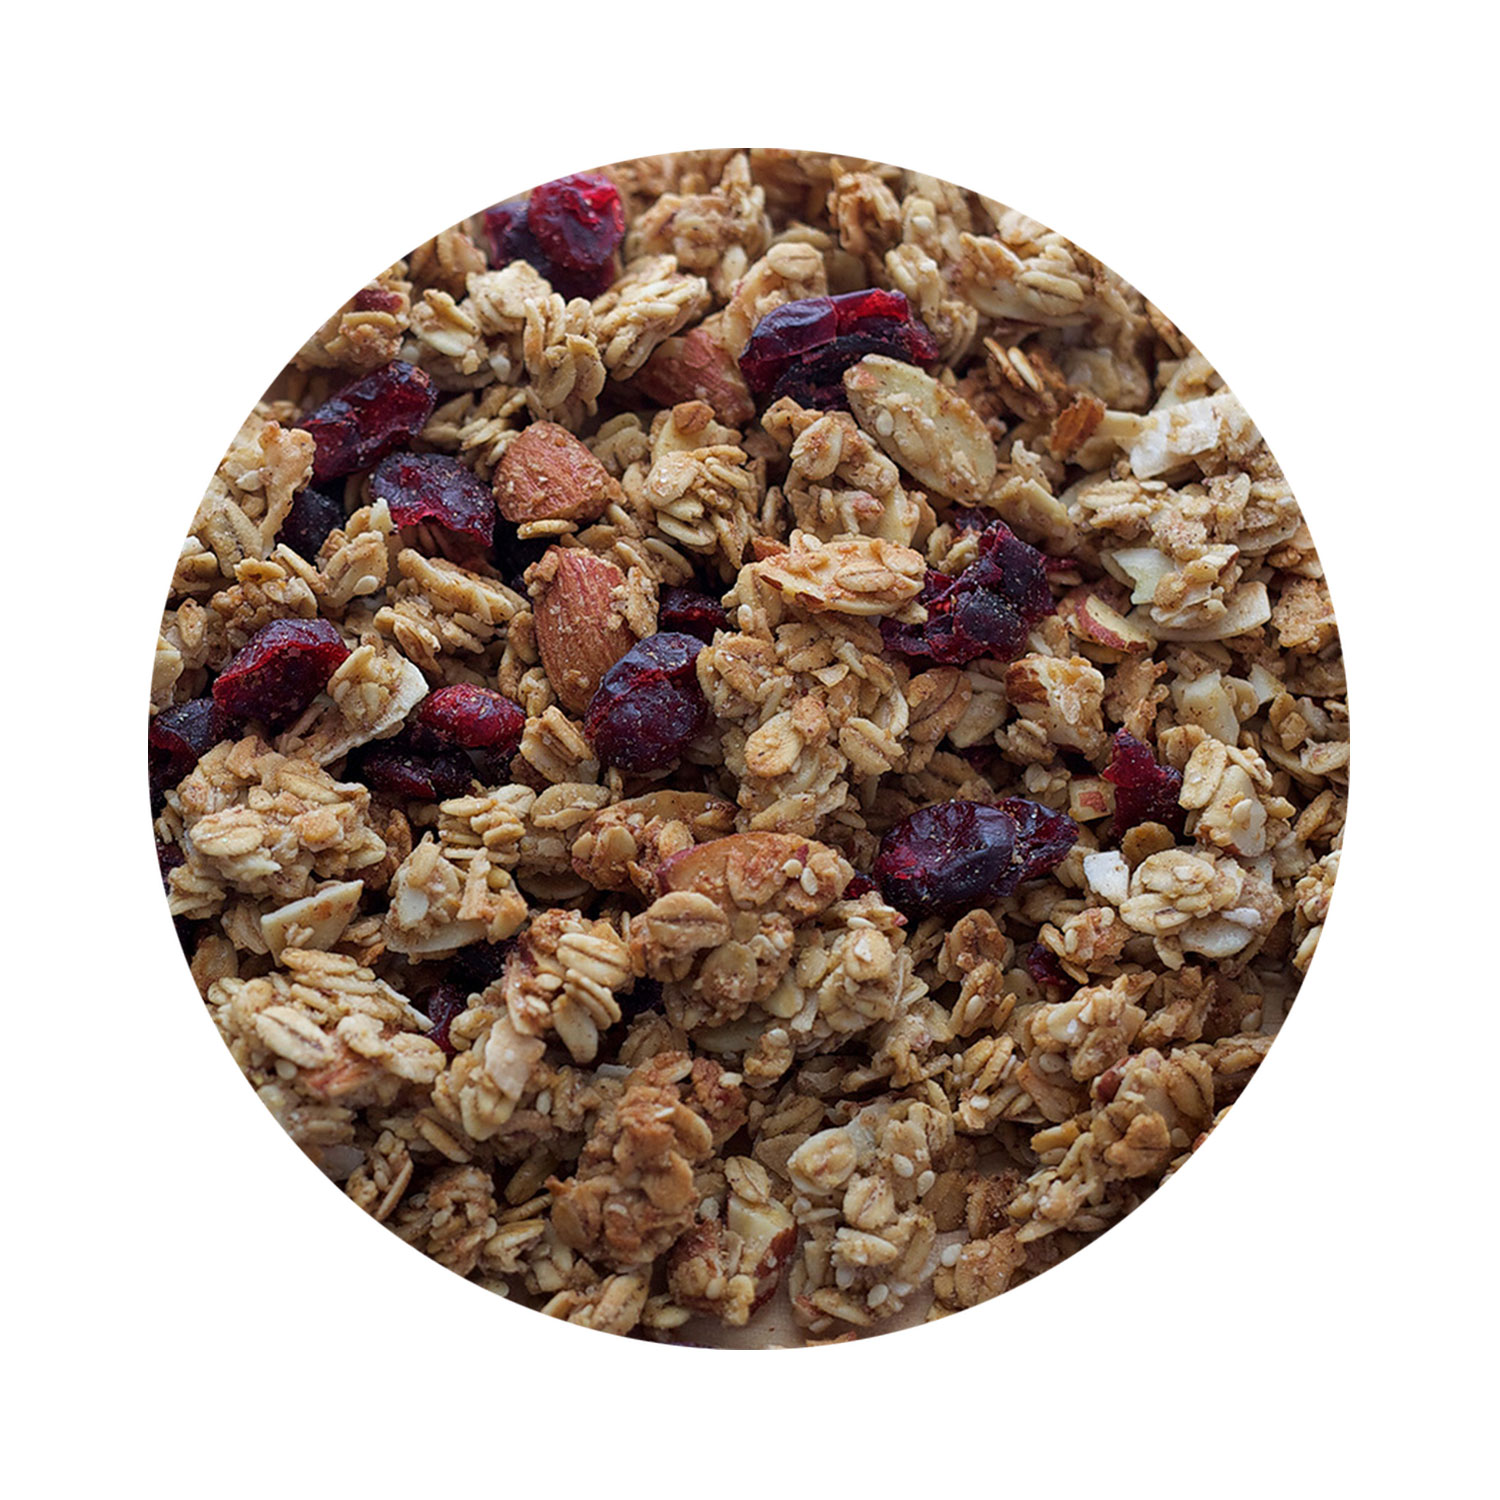 TOASTED ALMOND, COCONUT, AND CRANBERRY GRANOLA BY UPSTATE GRANOLA